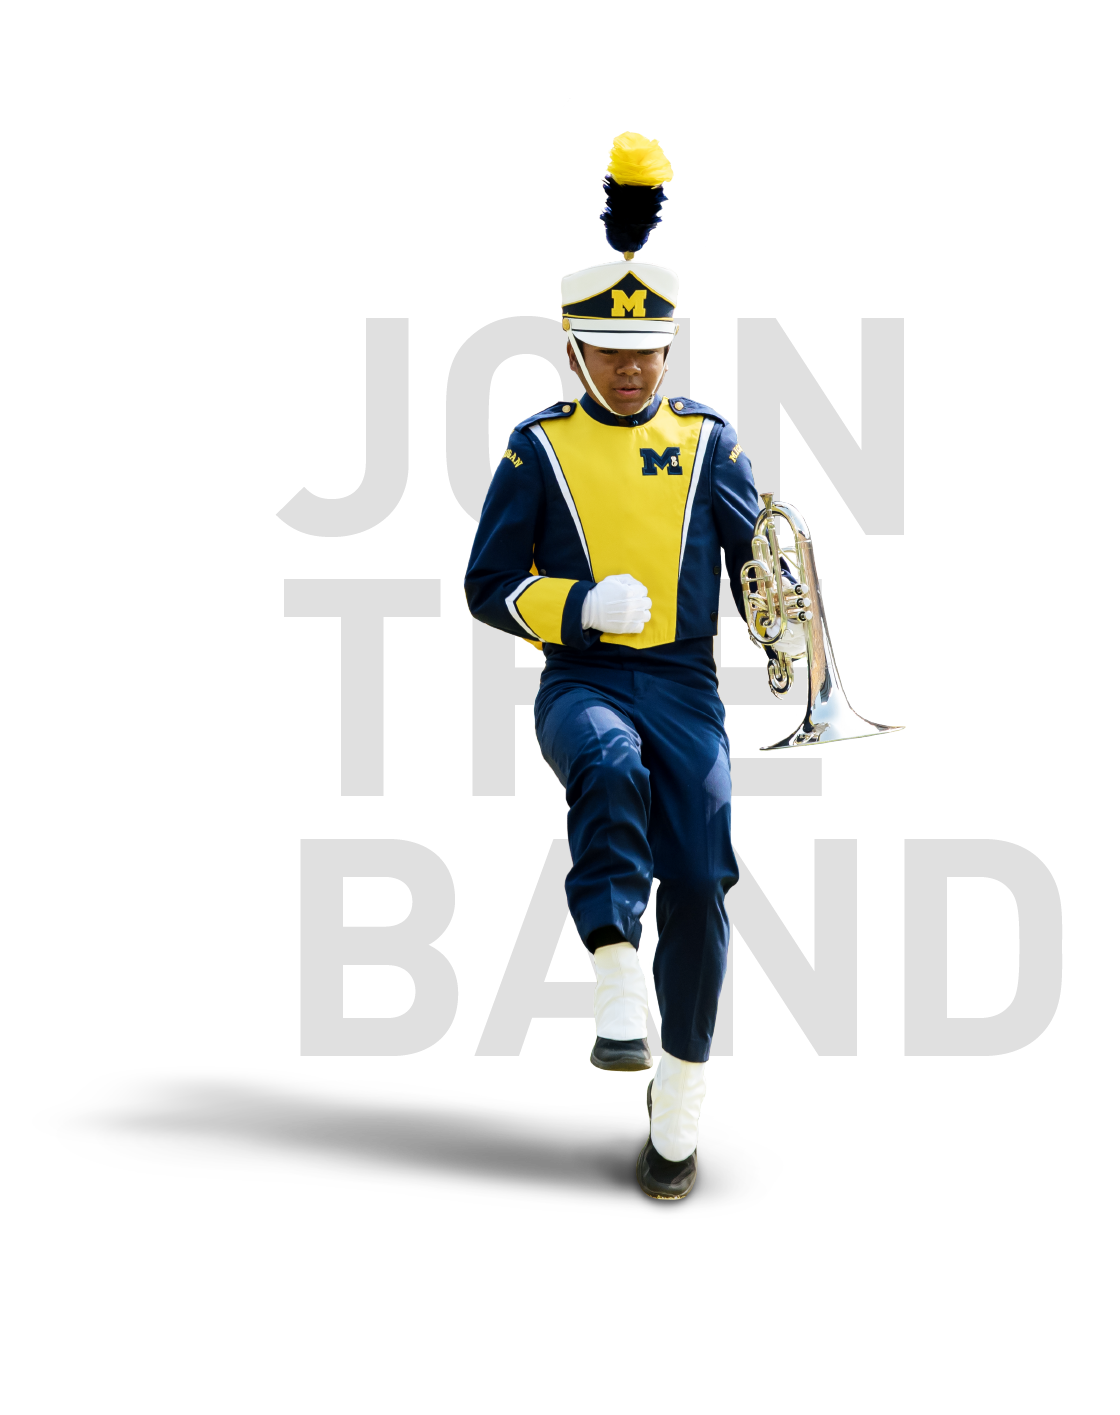 JOIN THE BAND - The Michigan Marching Band is open to all UM students including Dearborn and Flint. If you are a transfer student, current UM student, or incoming freshman you are welcome to audition for the Band.